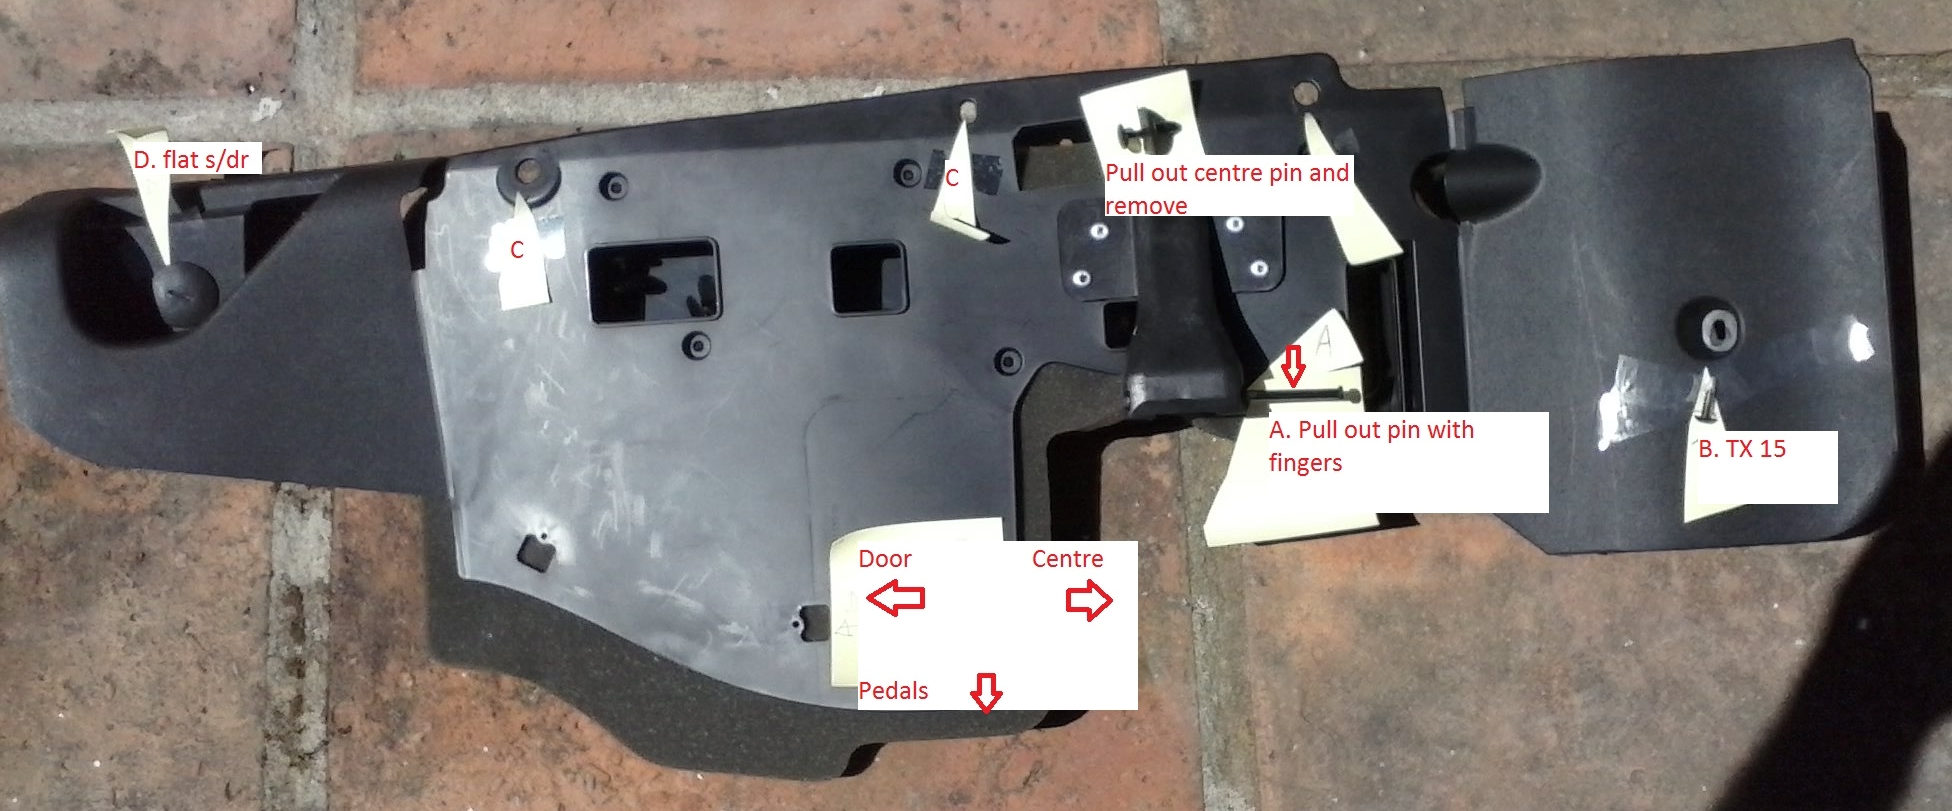 Wiring Diagrams Craftsman Garage Door Opener Along With Power Window